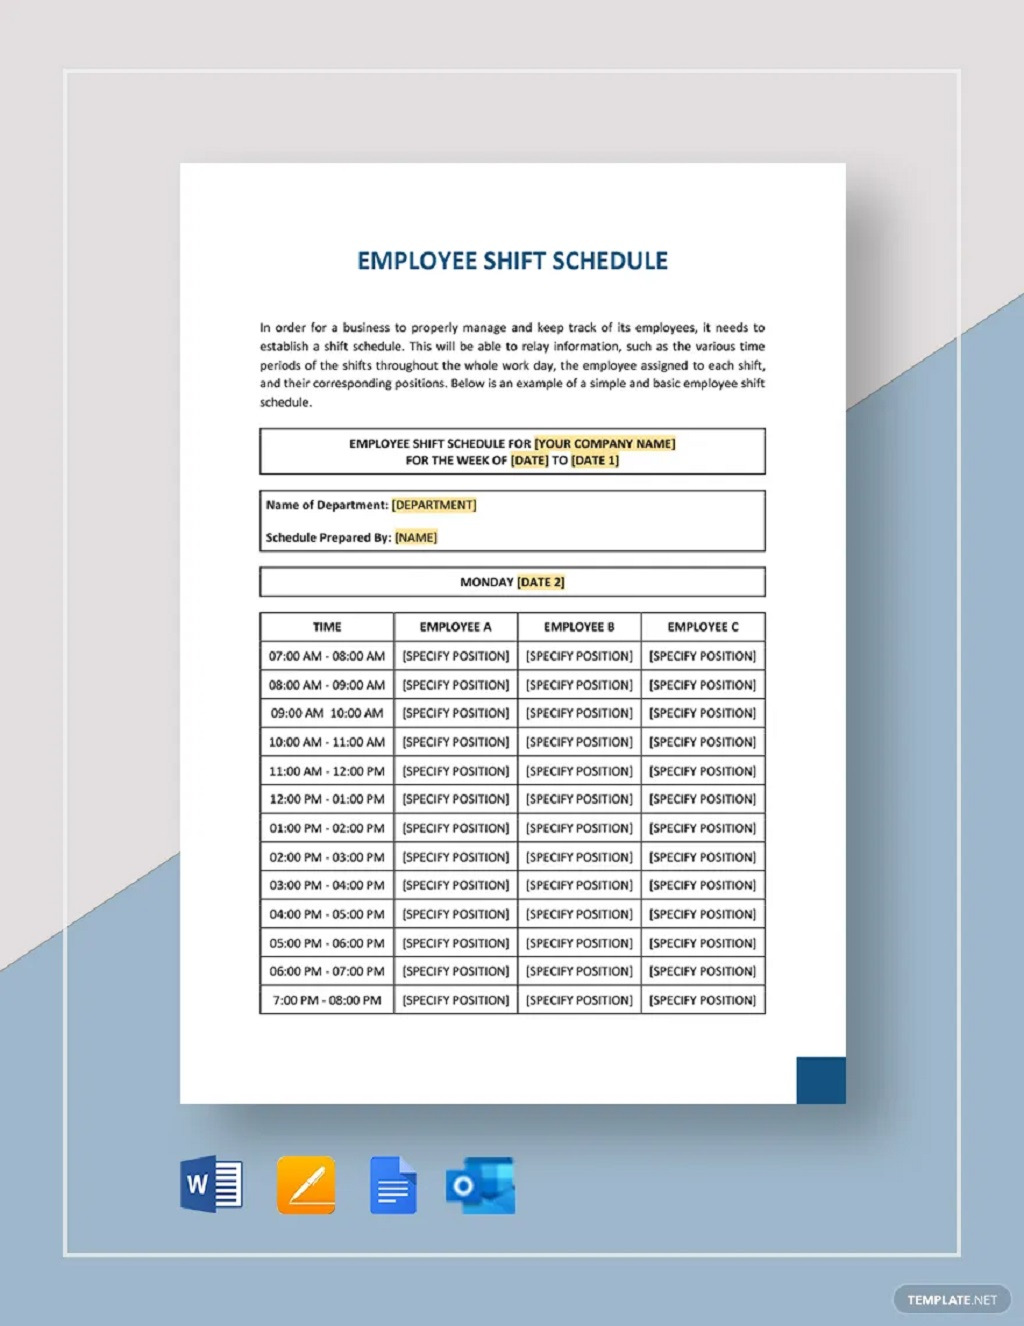 Weekly Employee Shift Schedule Template Sample Planner Printable Google Sheets Searches Related To Excel  Samples Large